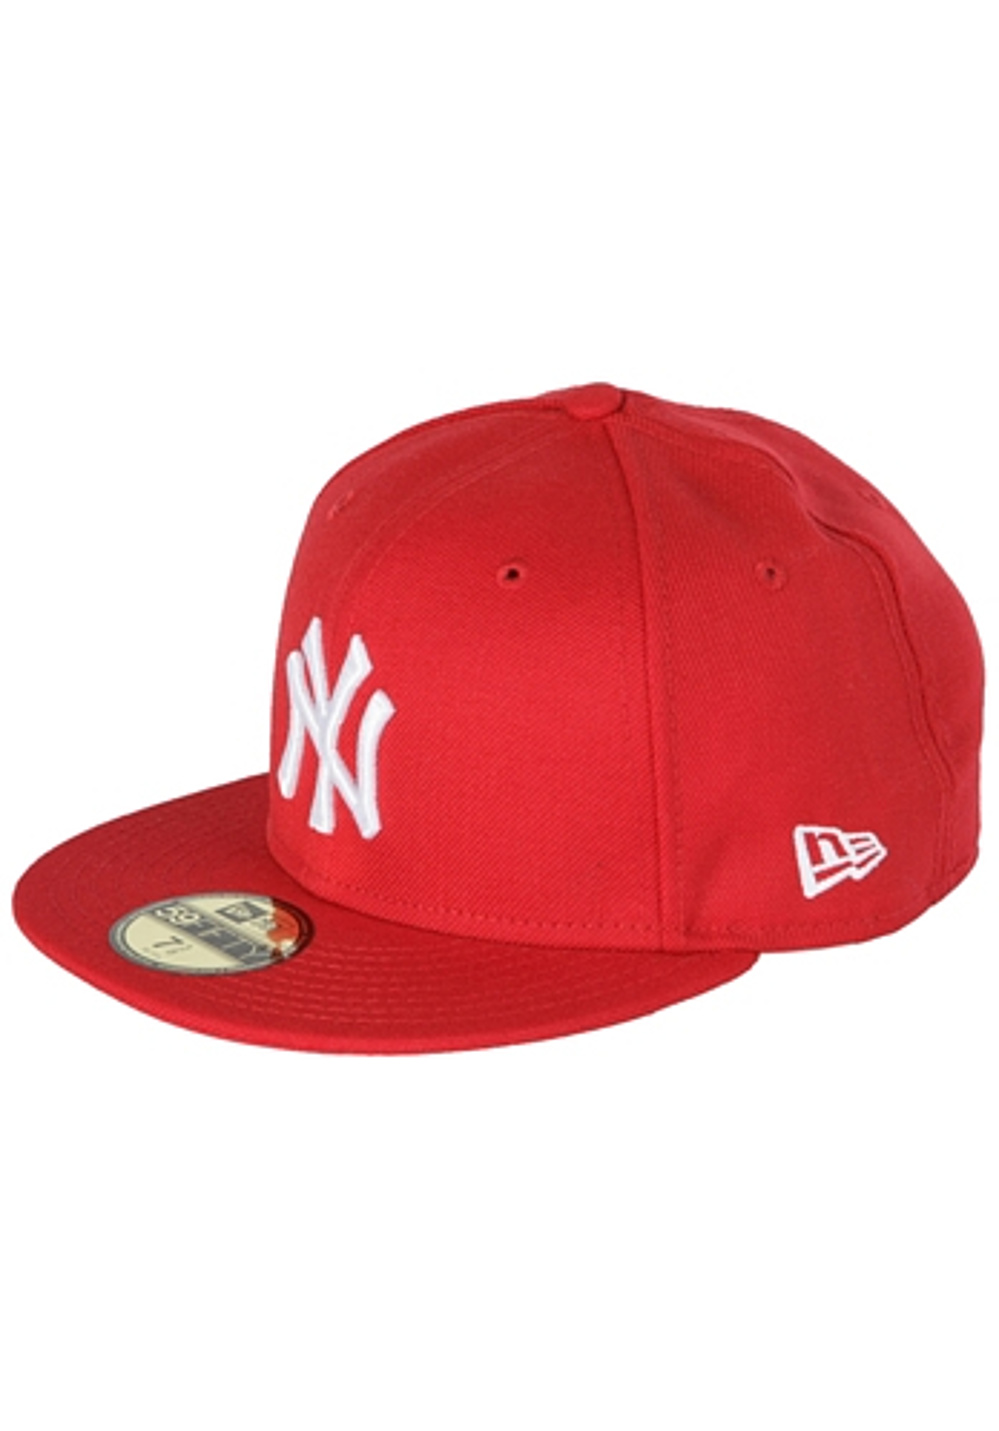 64caead31ffb3 NEW Era 59Fifty New York Yankees - Fitted Cap - Red - Planet Sports